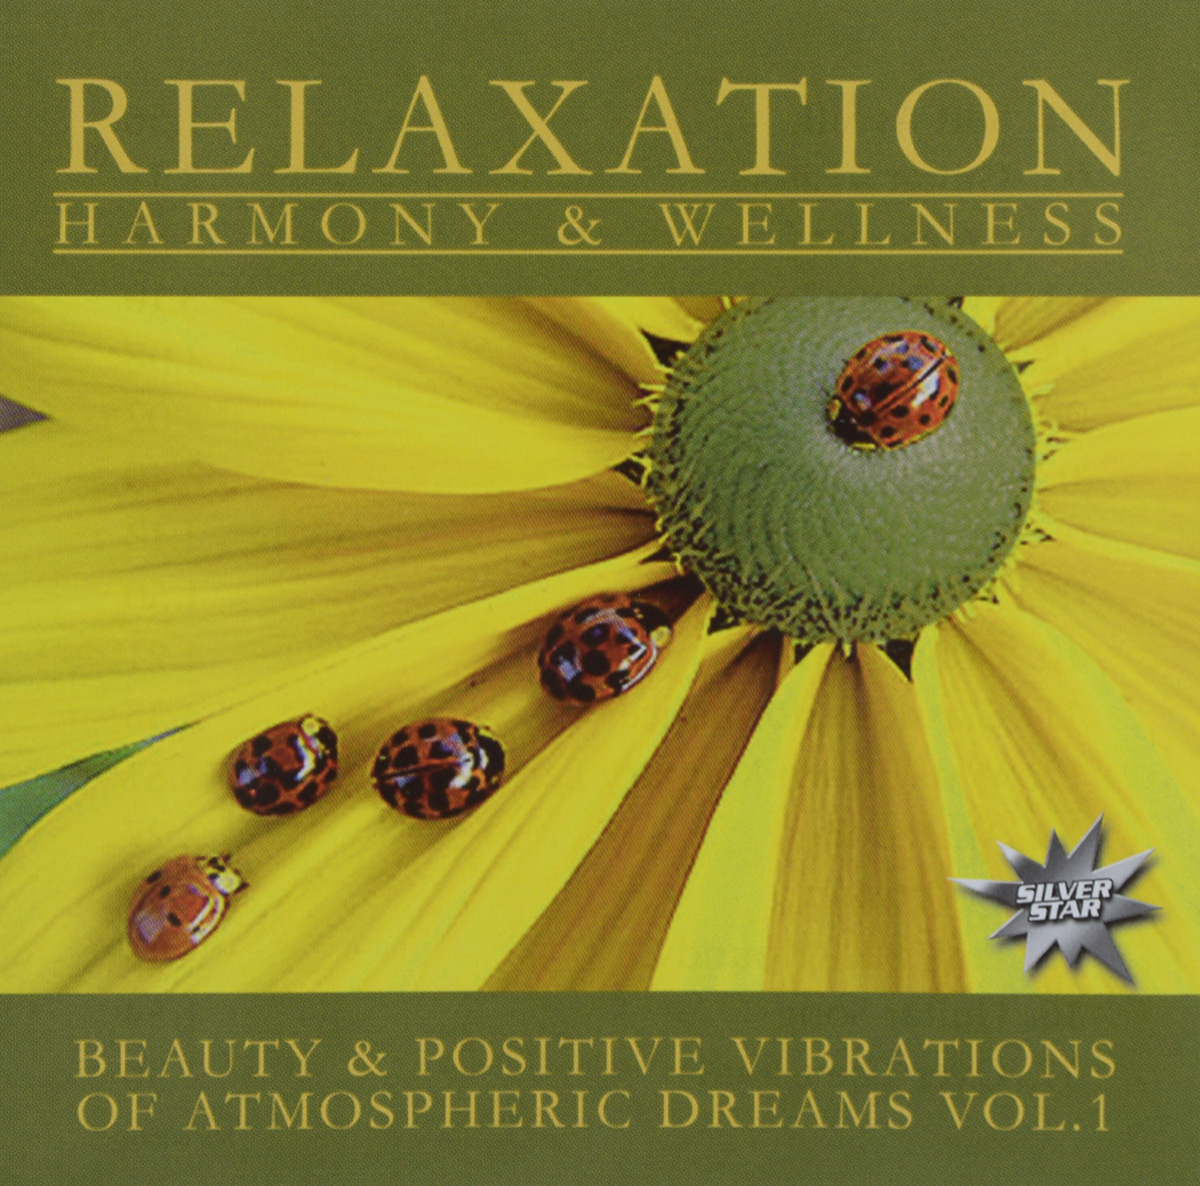 Beauty & Positive Vibrations Of Atmospheric Dreams. Vol. 1